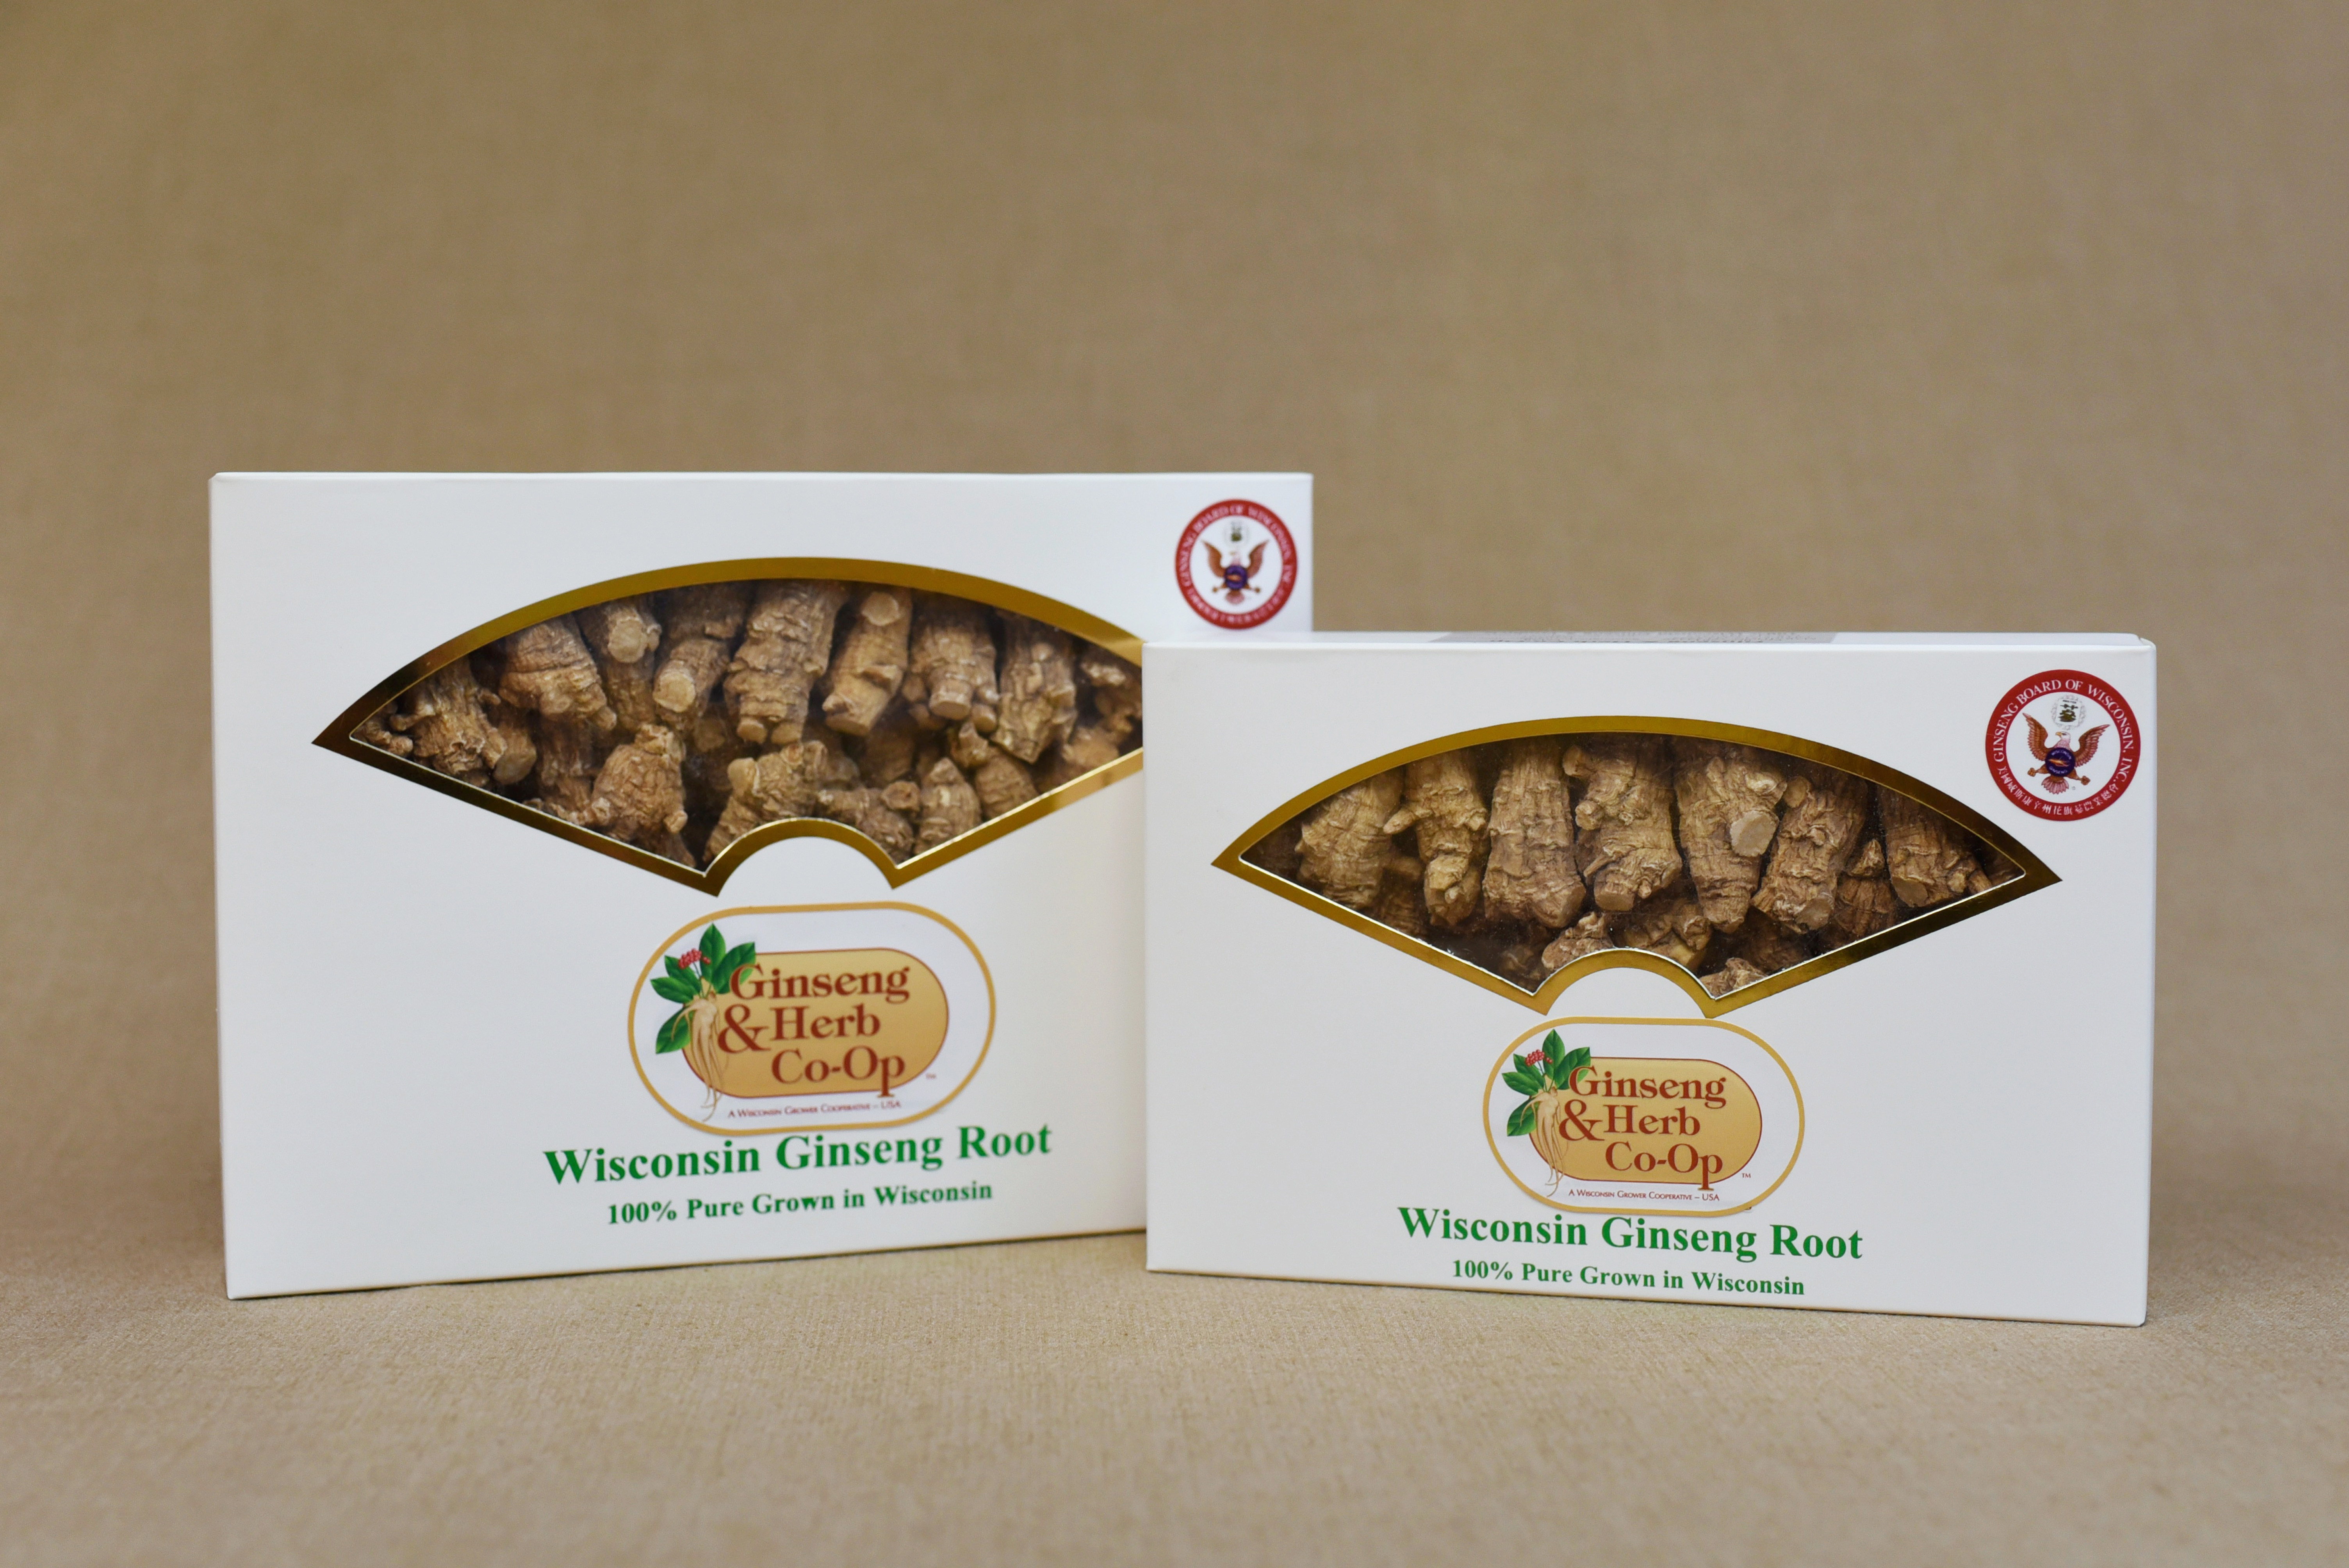 Buy Now! high quality Wisconsin Ginseng roots in Appleton, WI